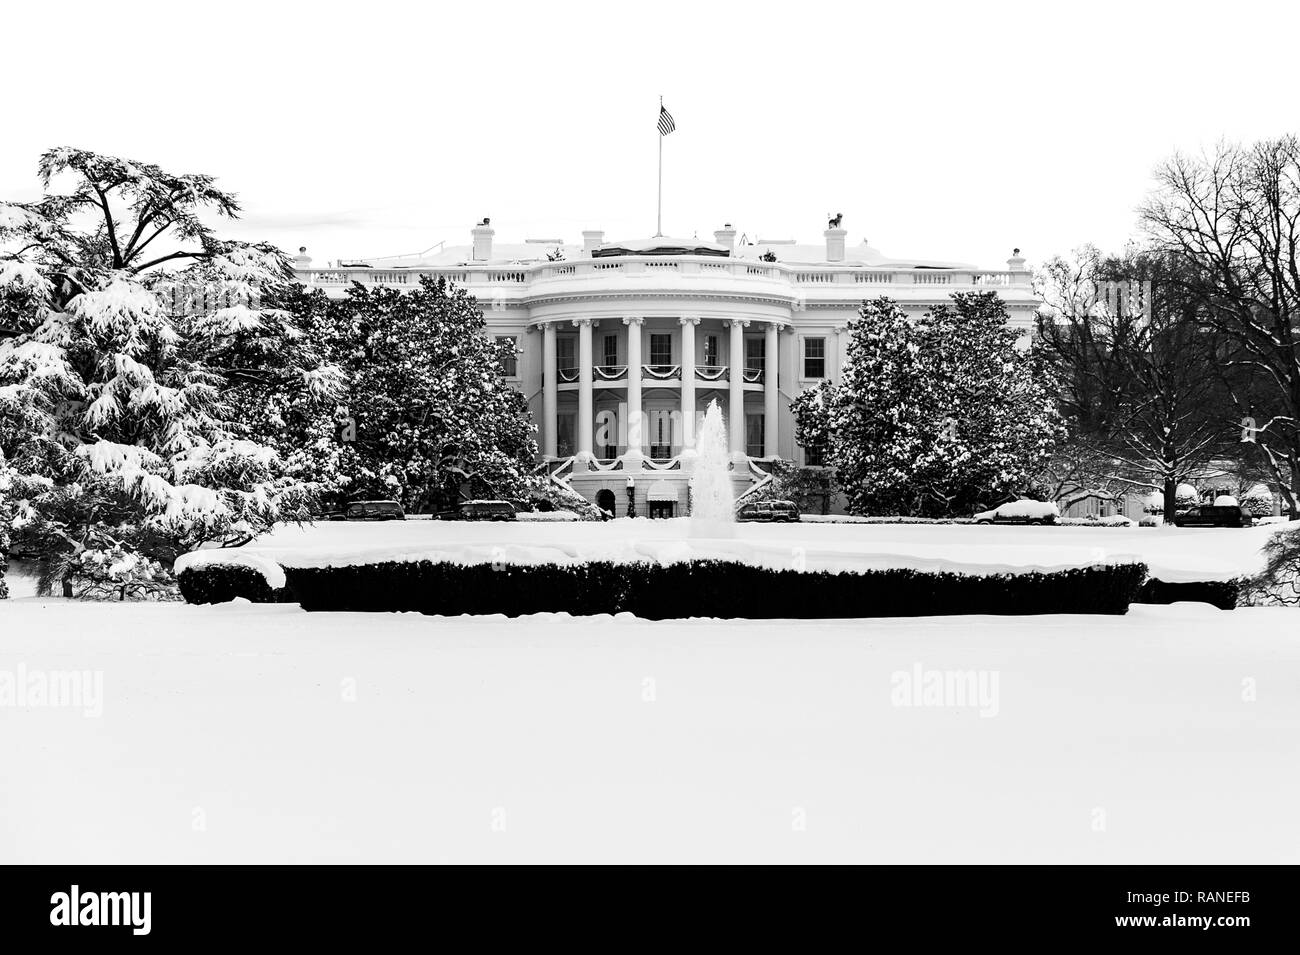 The White House in Washington DC after a record snow fall in the winter of 2009. - Stock Image